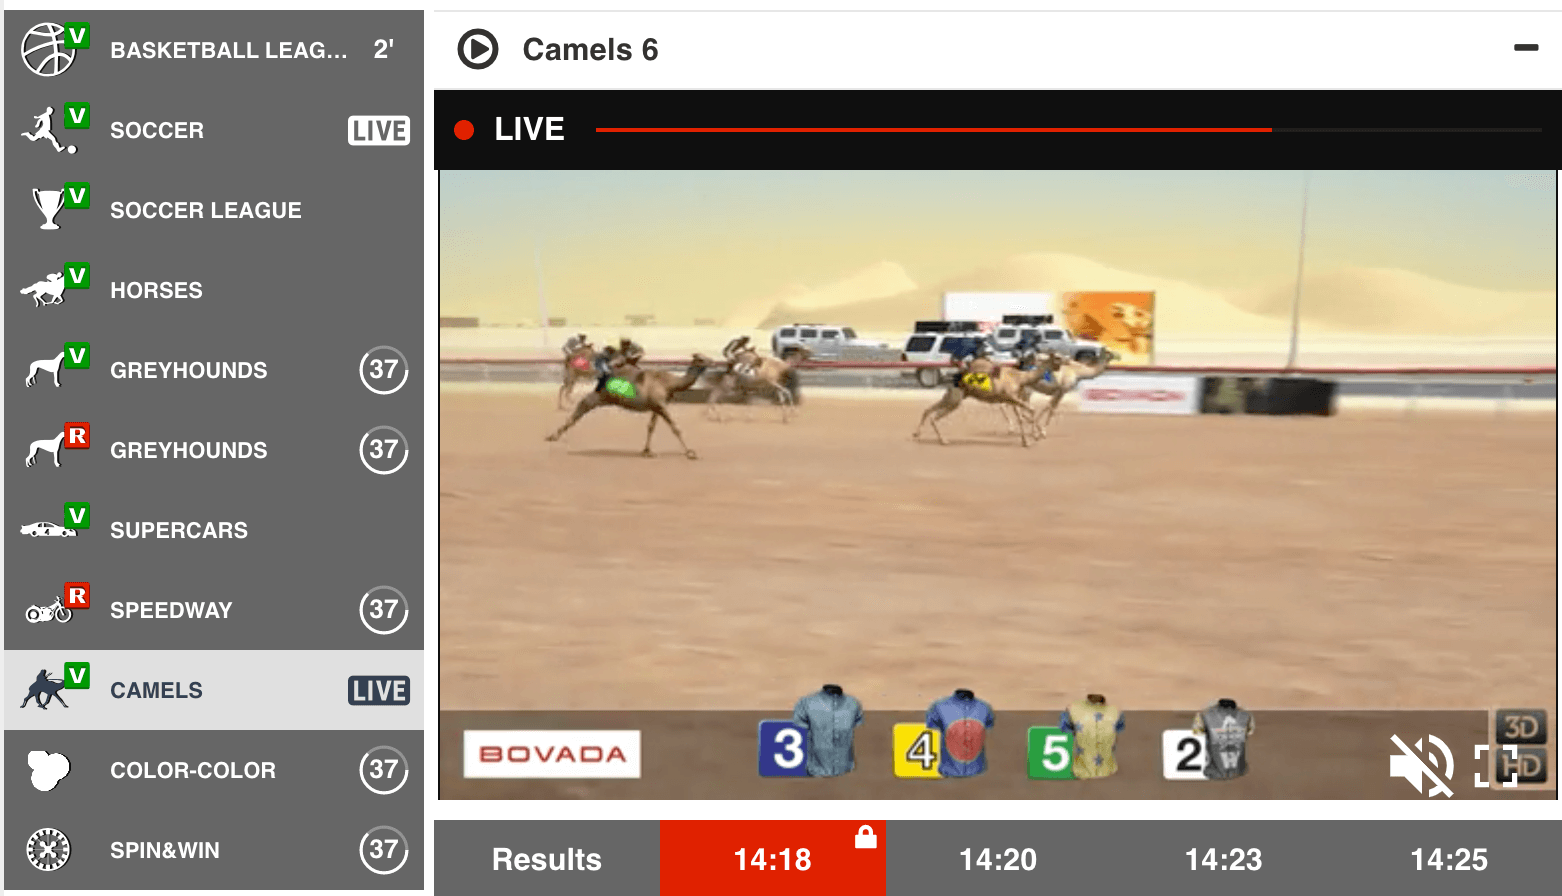 camel race at bovada